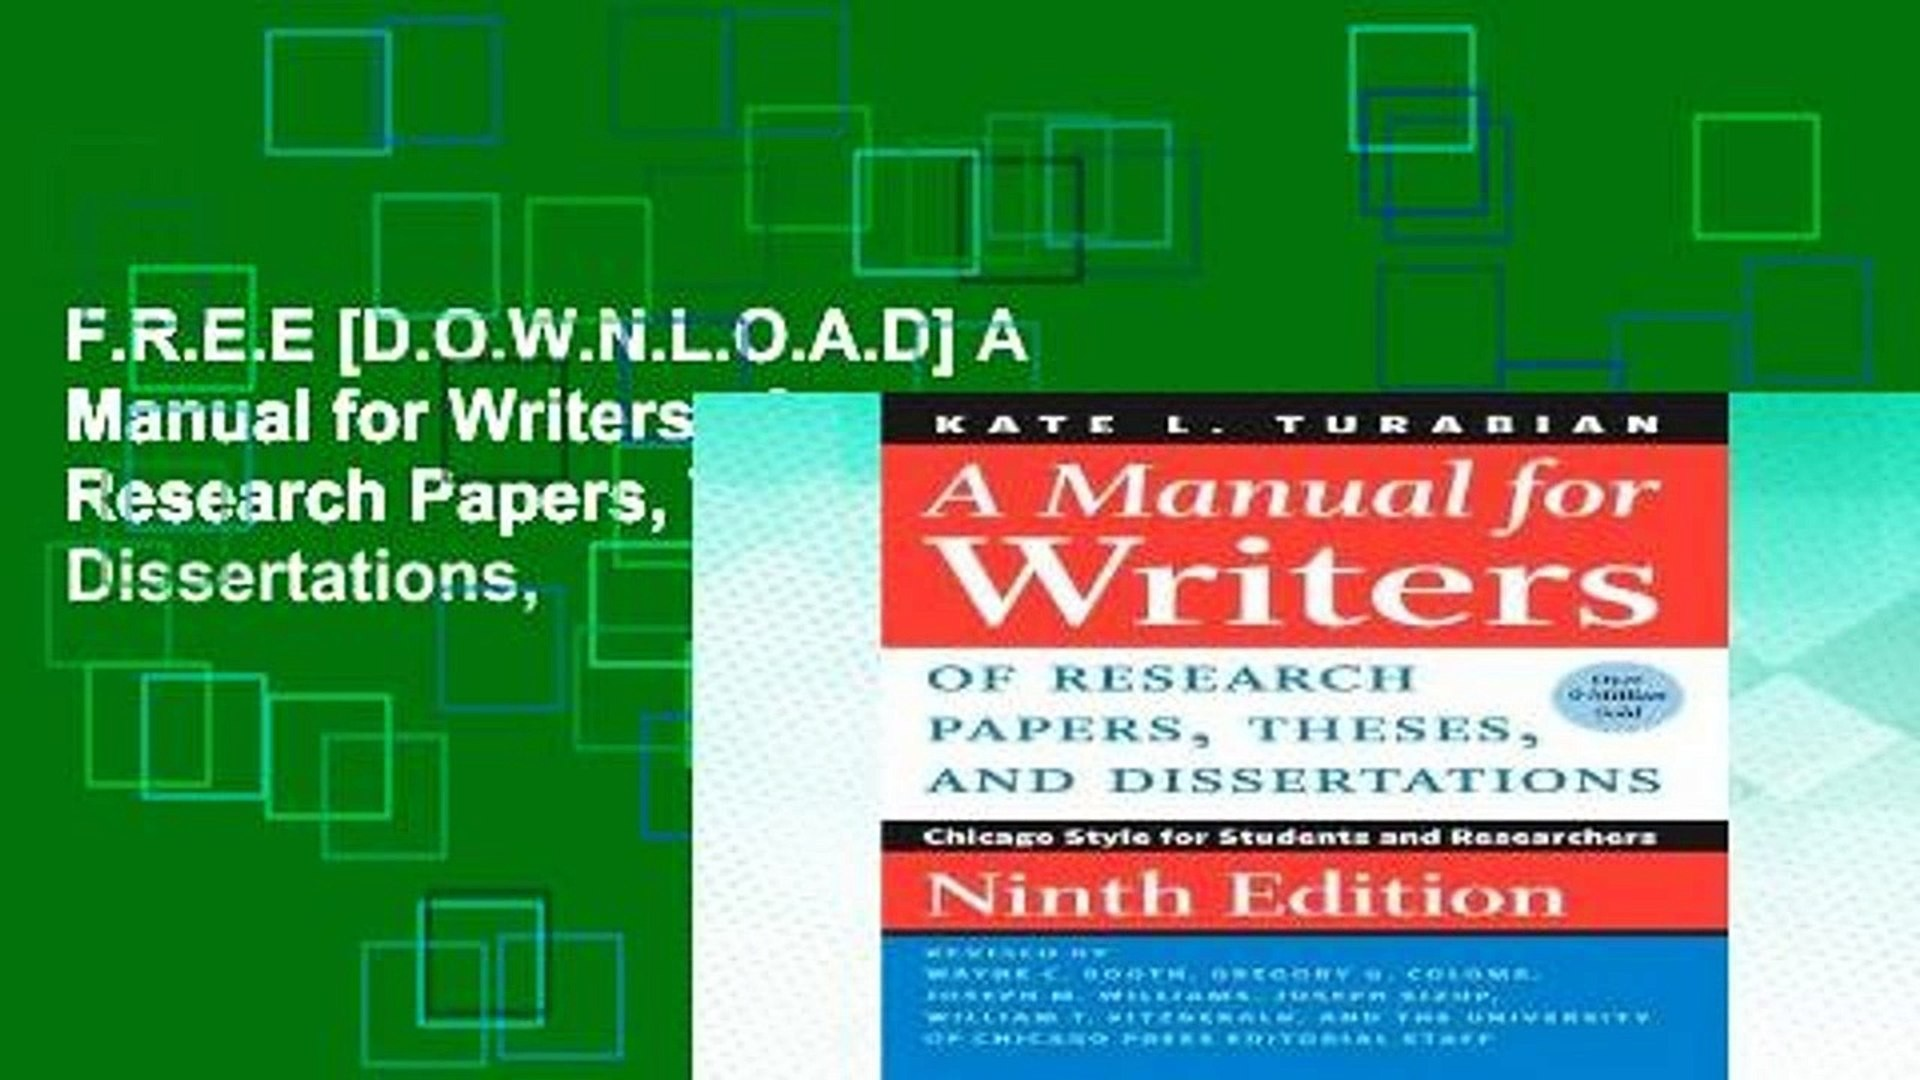 013 X1080 Kcn Research Paper Manual For Writers Of Papers Theses And Magnificent Dissertations A 8th Ed Pdf 1920